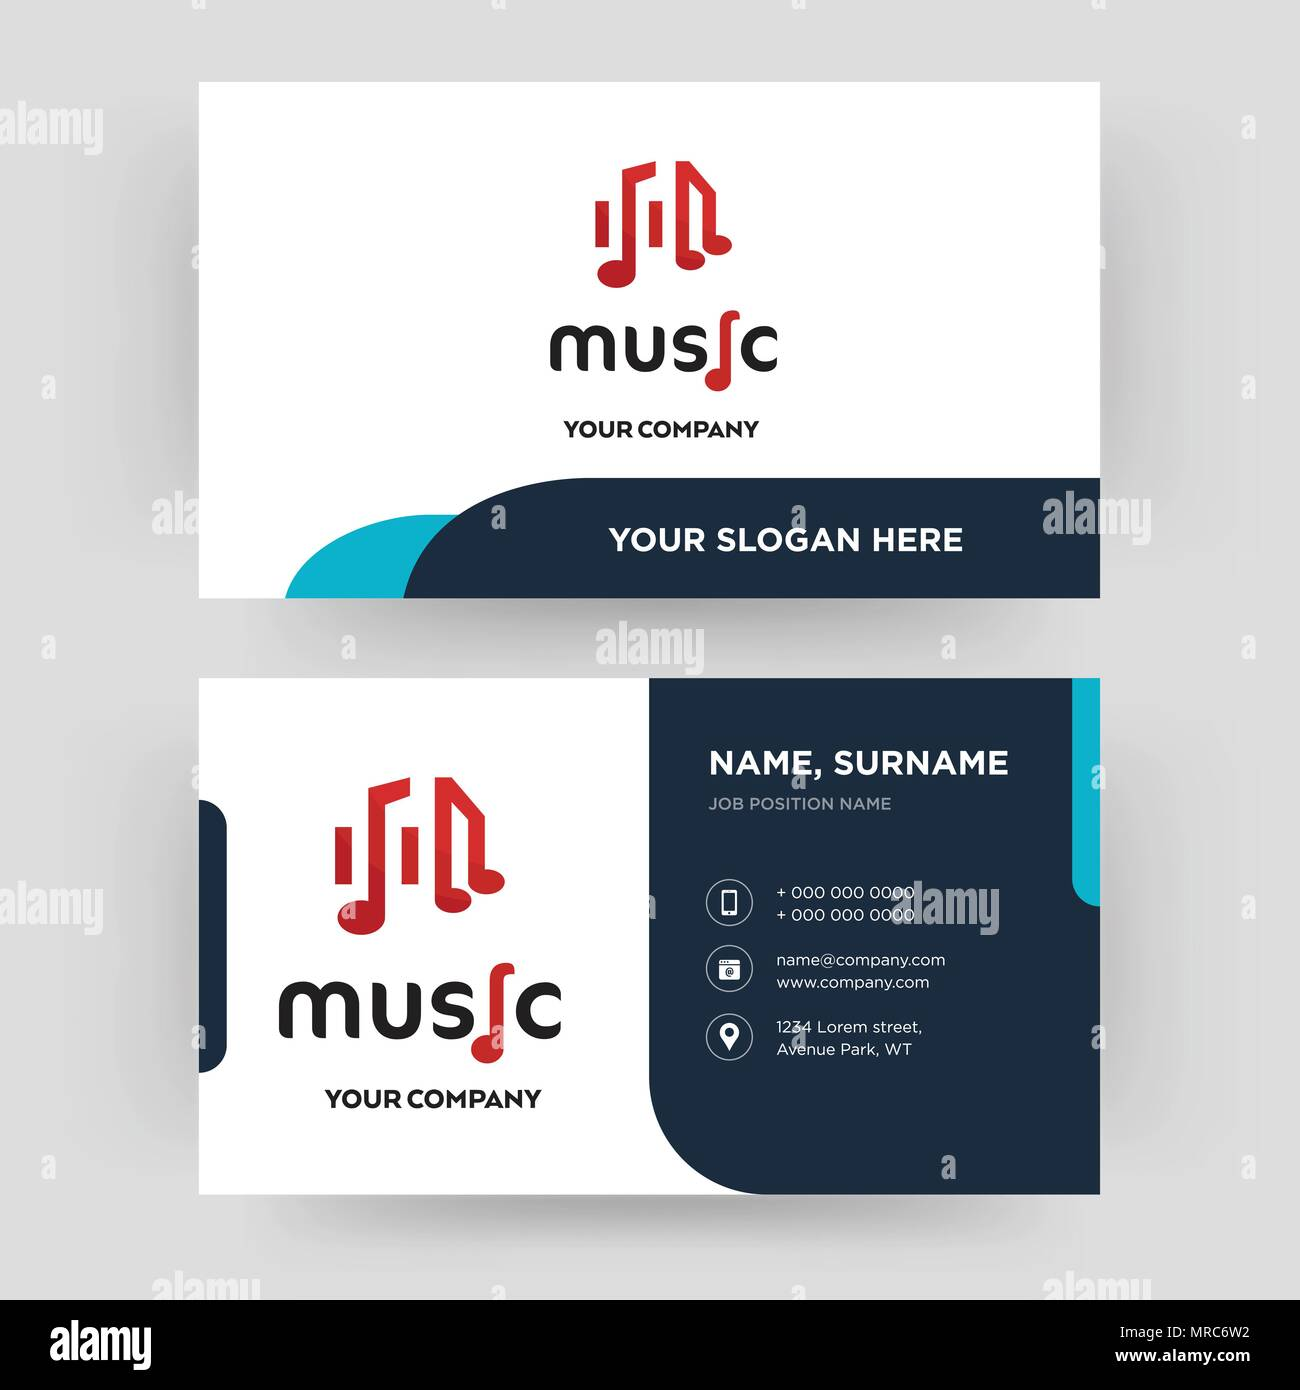 Music business card design template visiting for your company music business card design template visiting for your company modern creative and clean identity card vector reheart Image collections